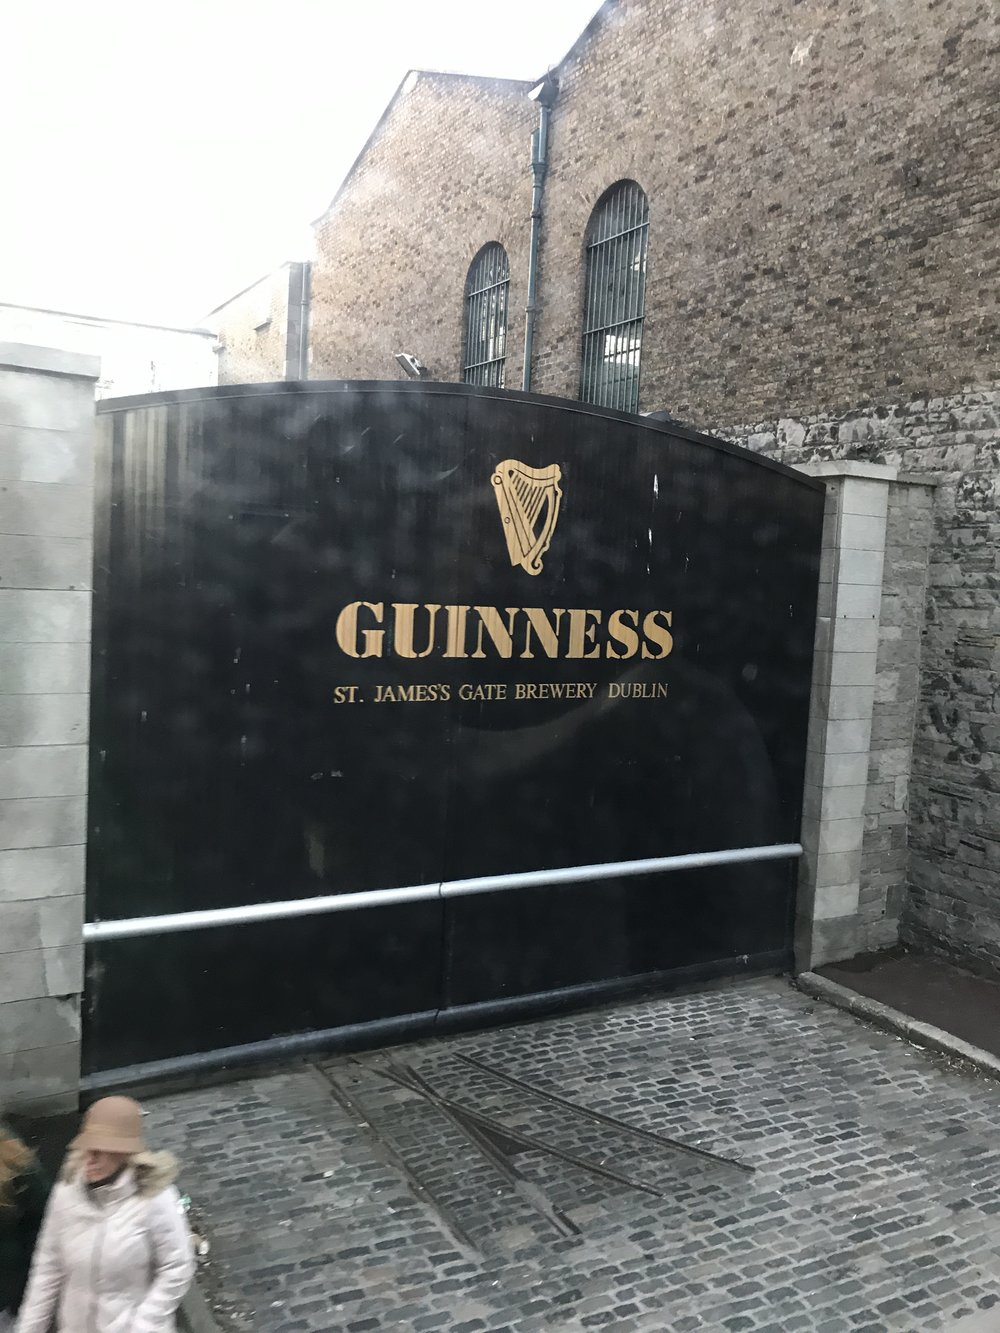 This photo is especially hilarious because of our tour bus driver. He said we could get a great photo of the Guiness gate that makes an appearance in commercials. He said normally there are a million tourists in front of it, but he would act like he was going to be turning and swerve into the area and everyone will get out of the way for us to take THAT PHOTO. ** dead**